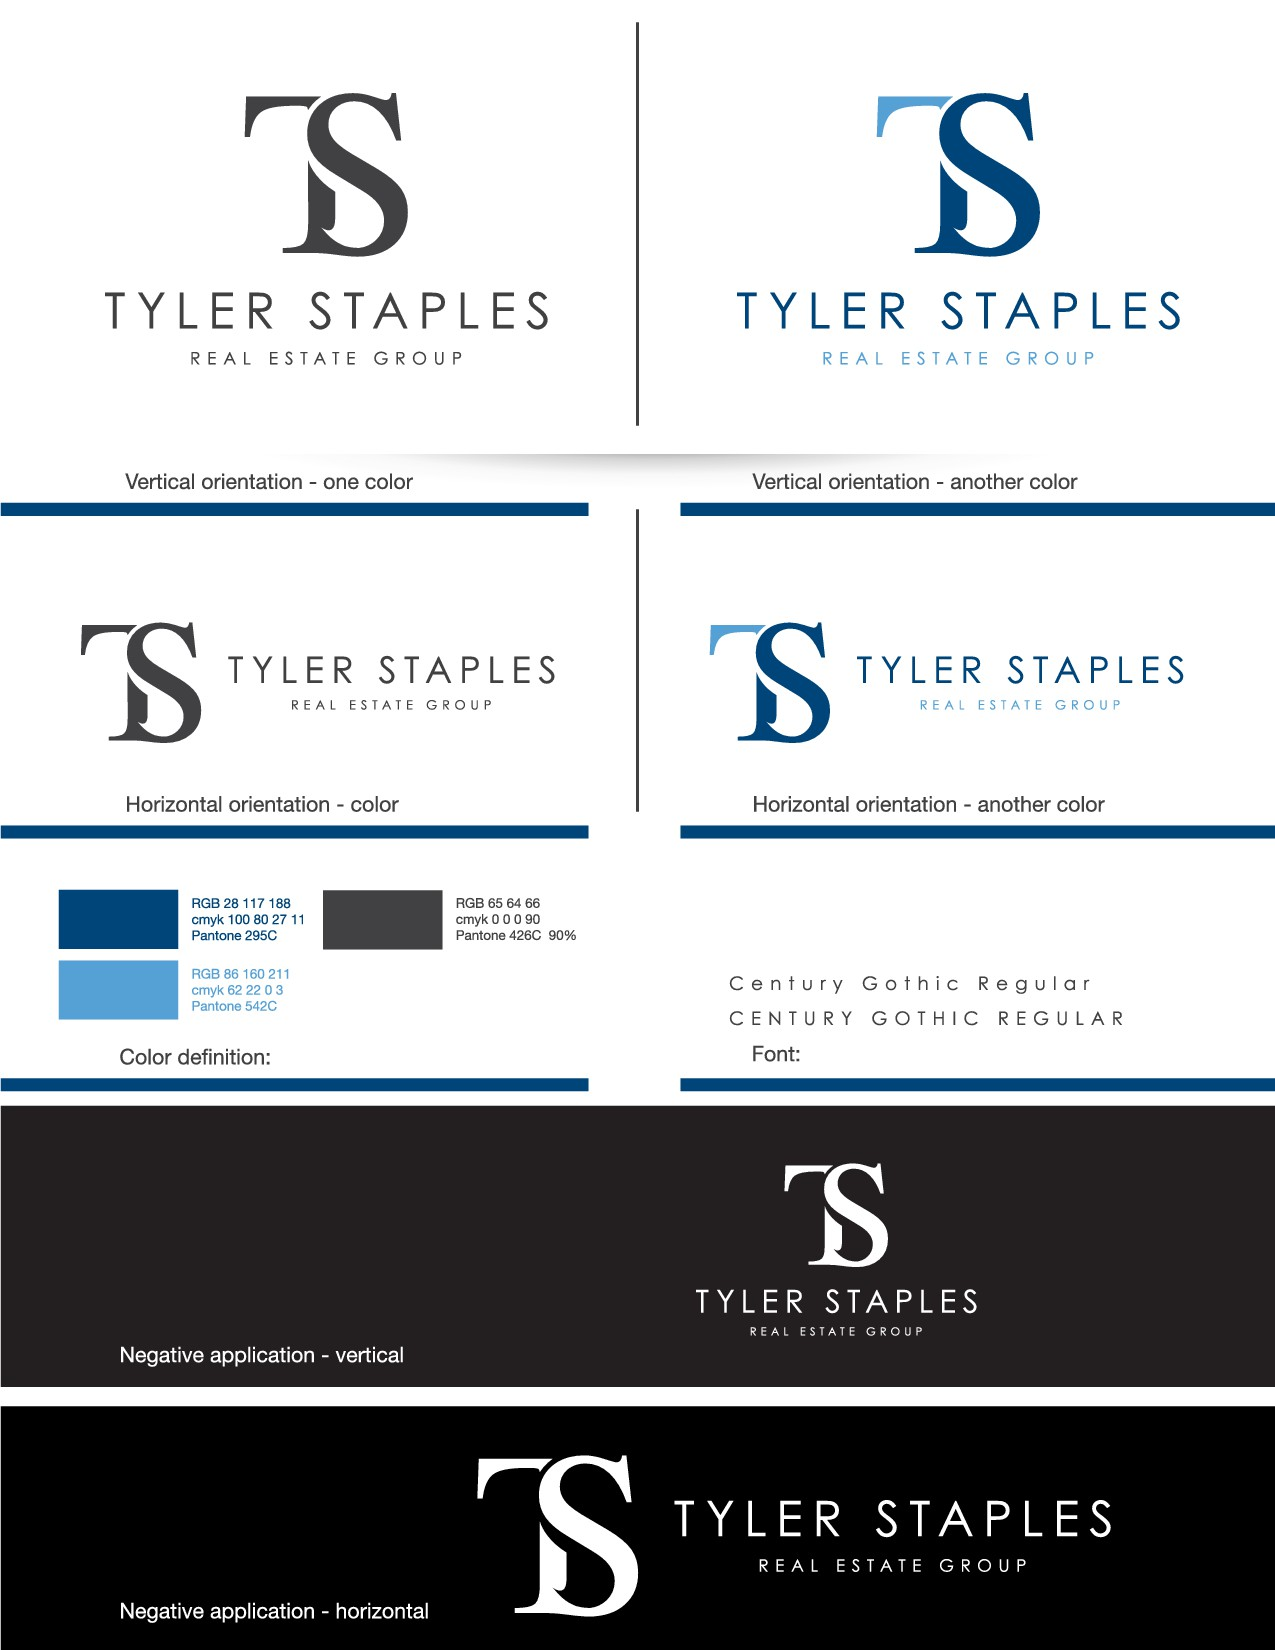 Creative, simple yet powerful logo for Real Estate Broker